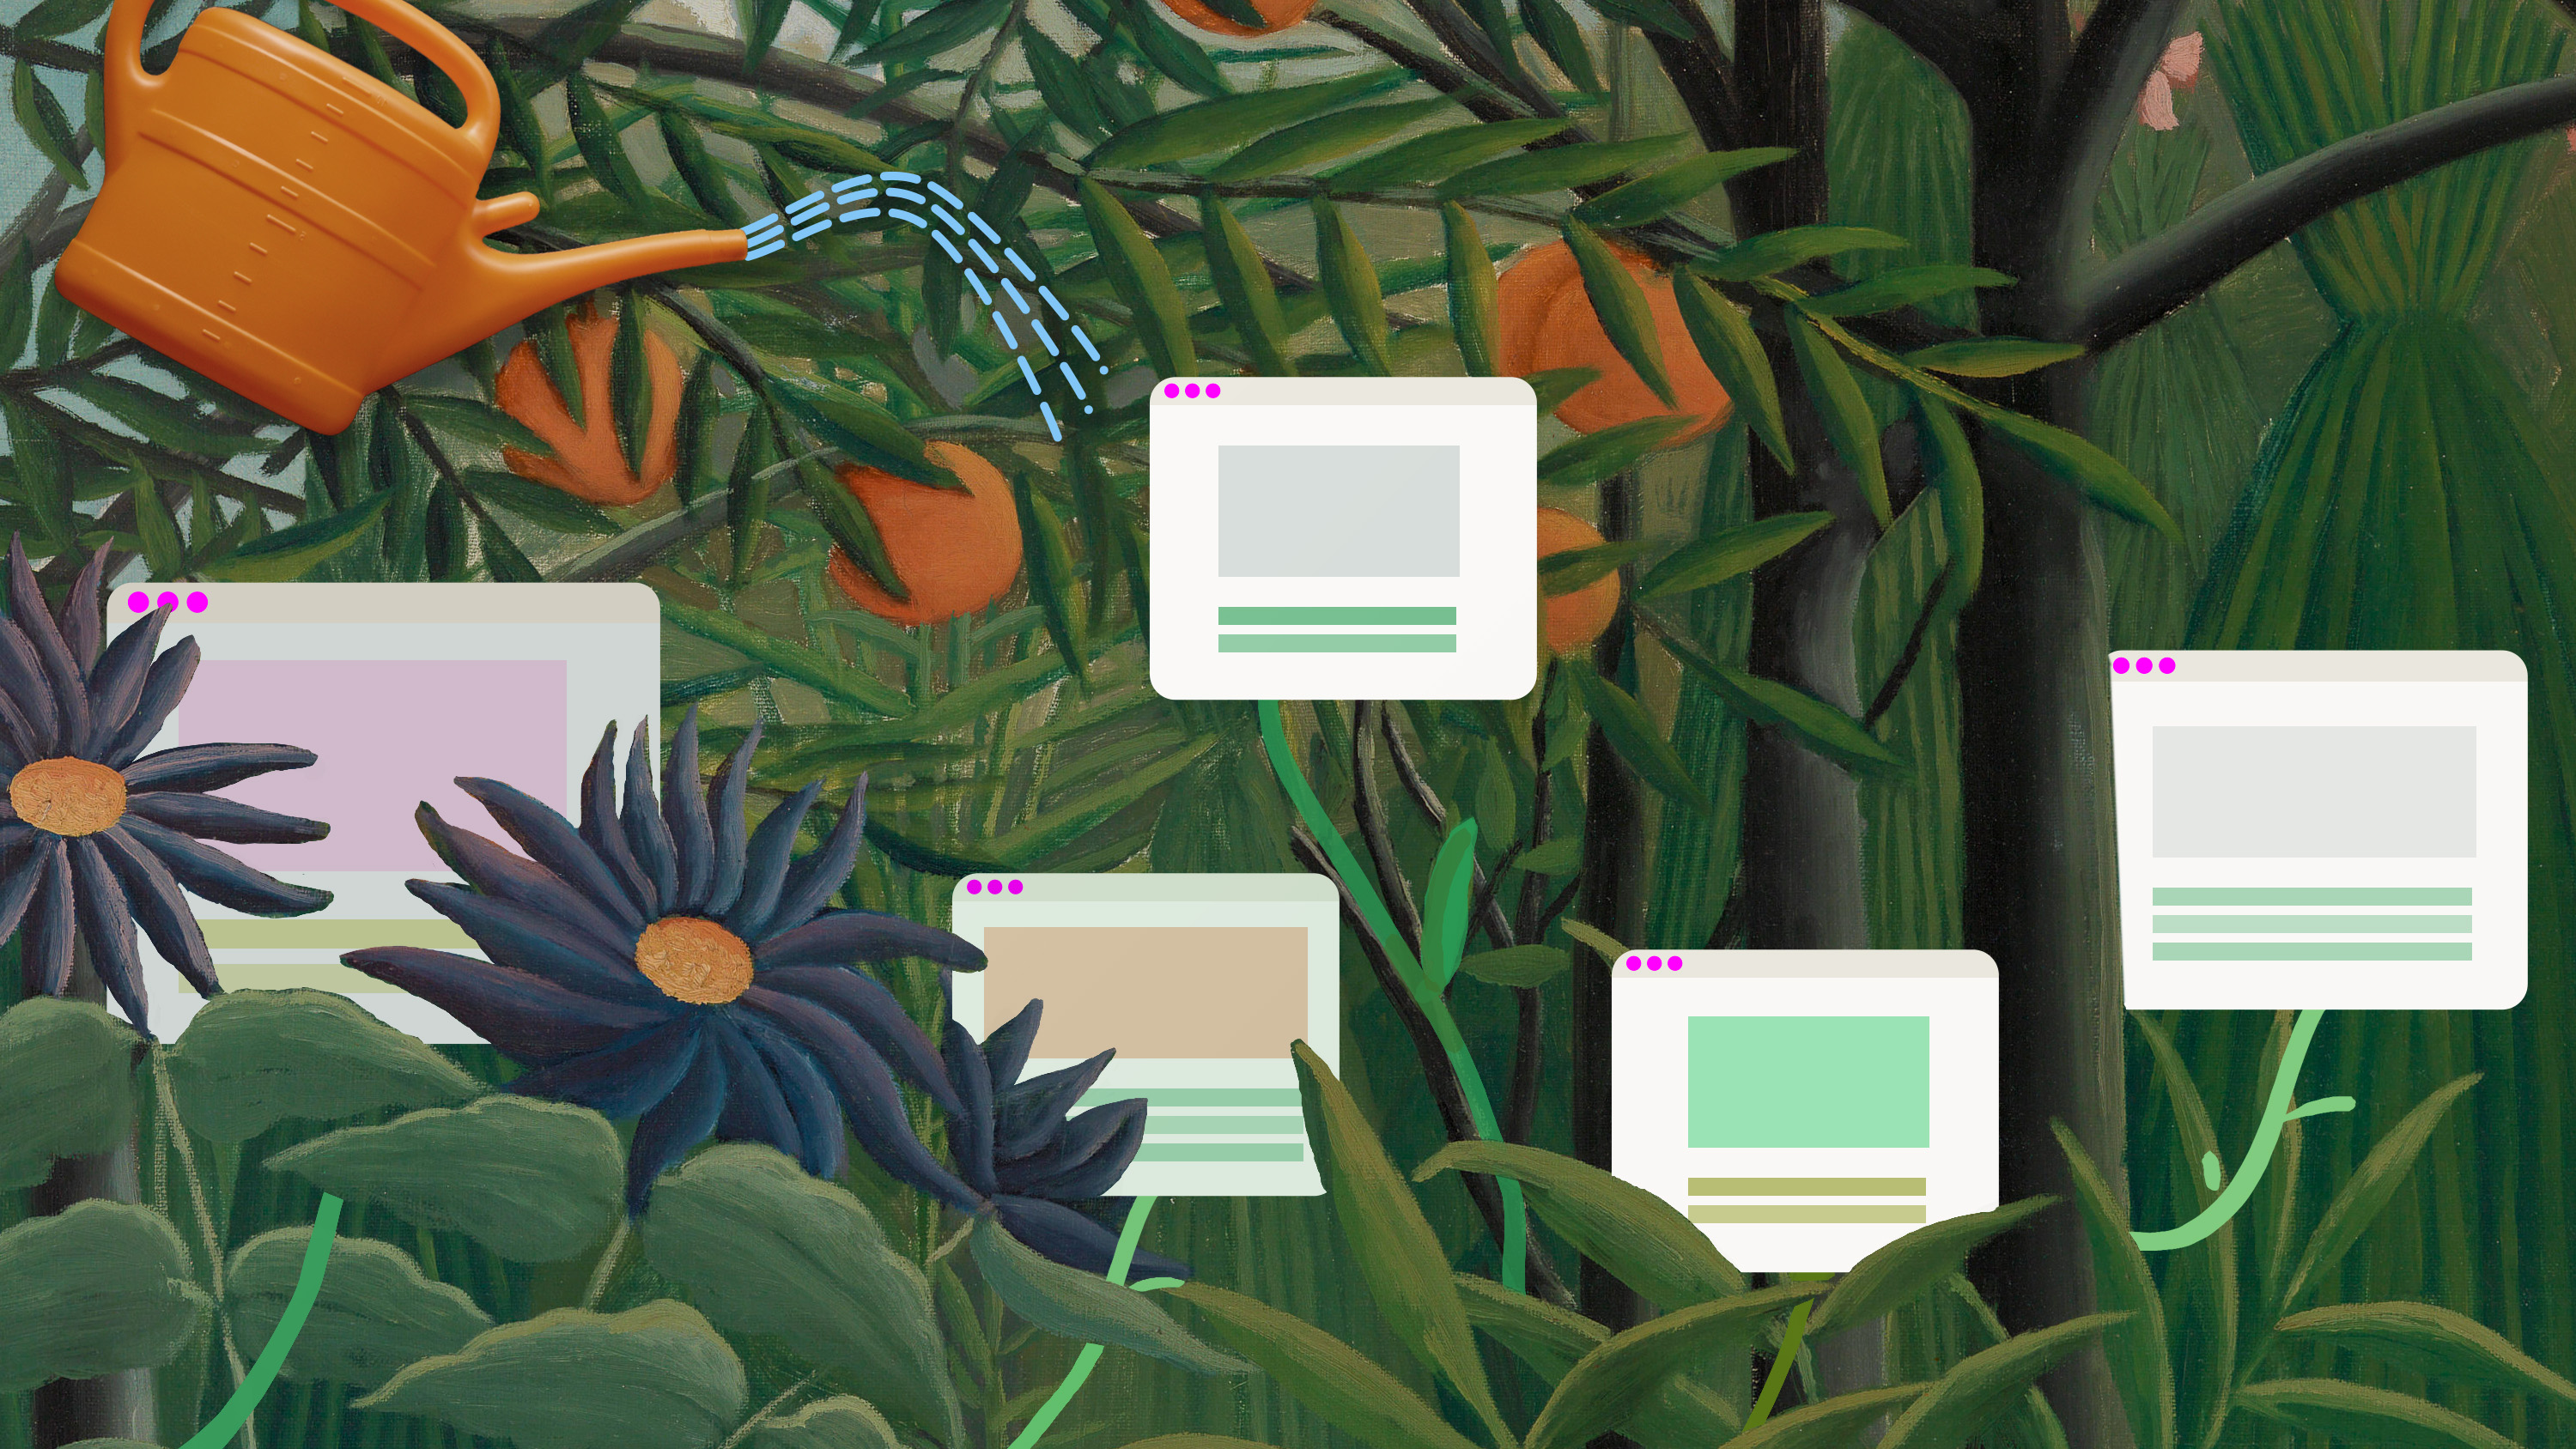 digital garden illustration of wild plants with flowers growing around screens